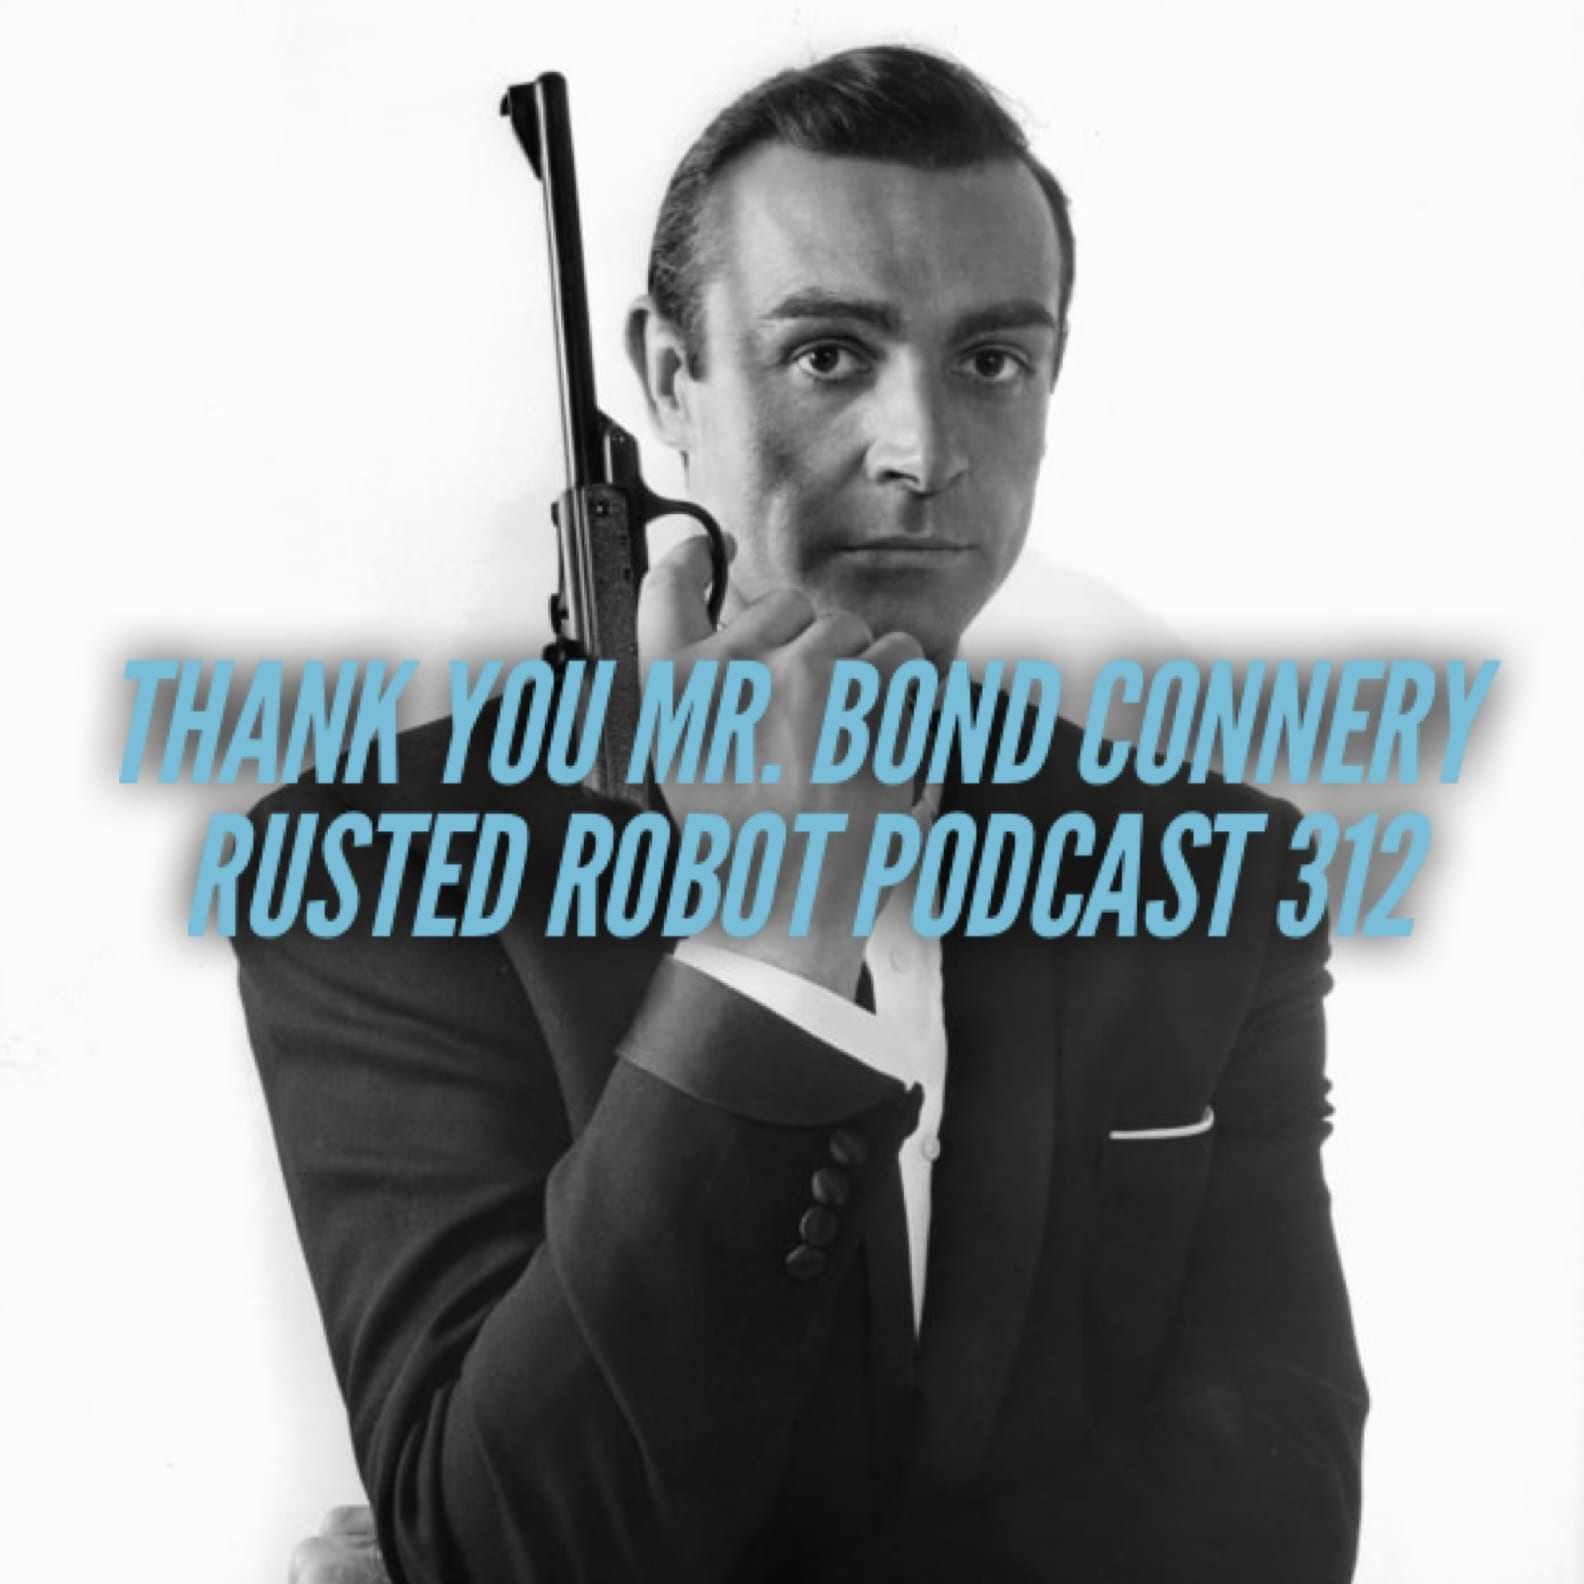 Thank You Mr. Bond Connery - 312